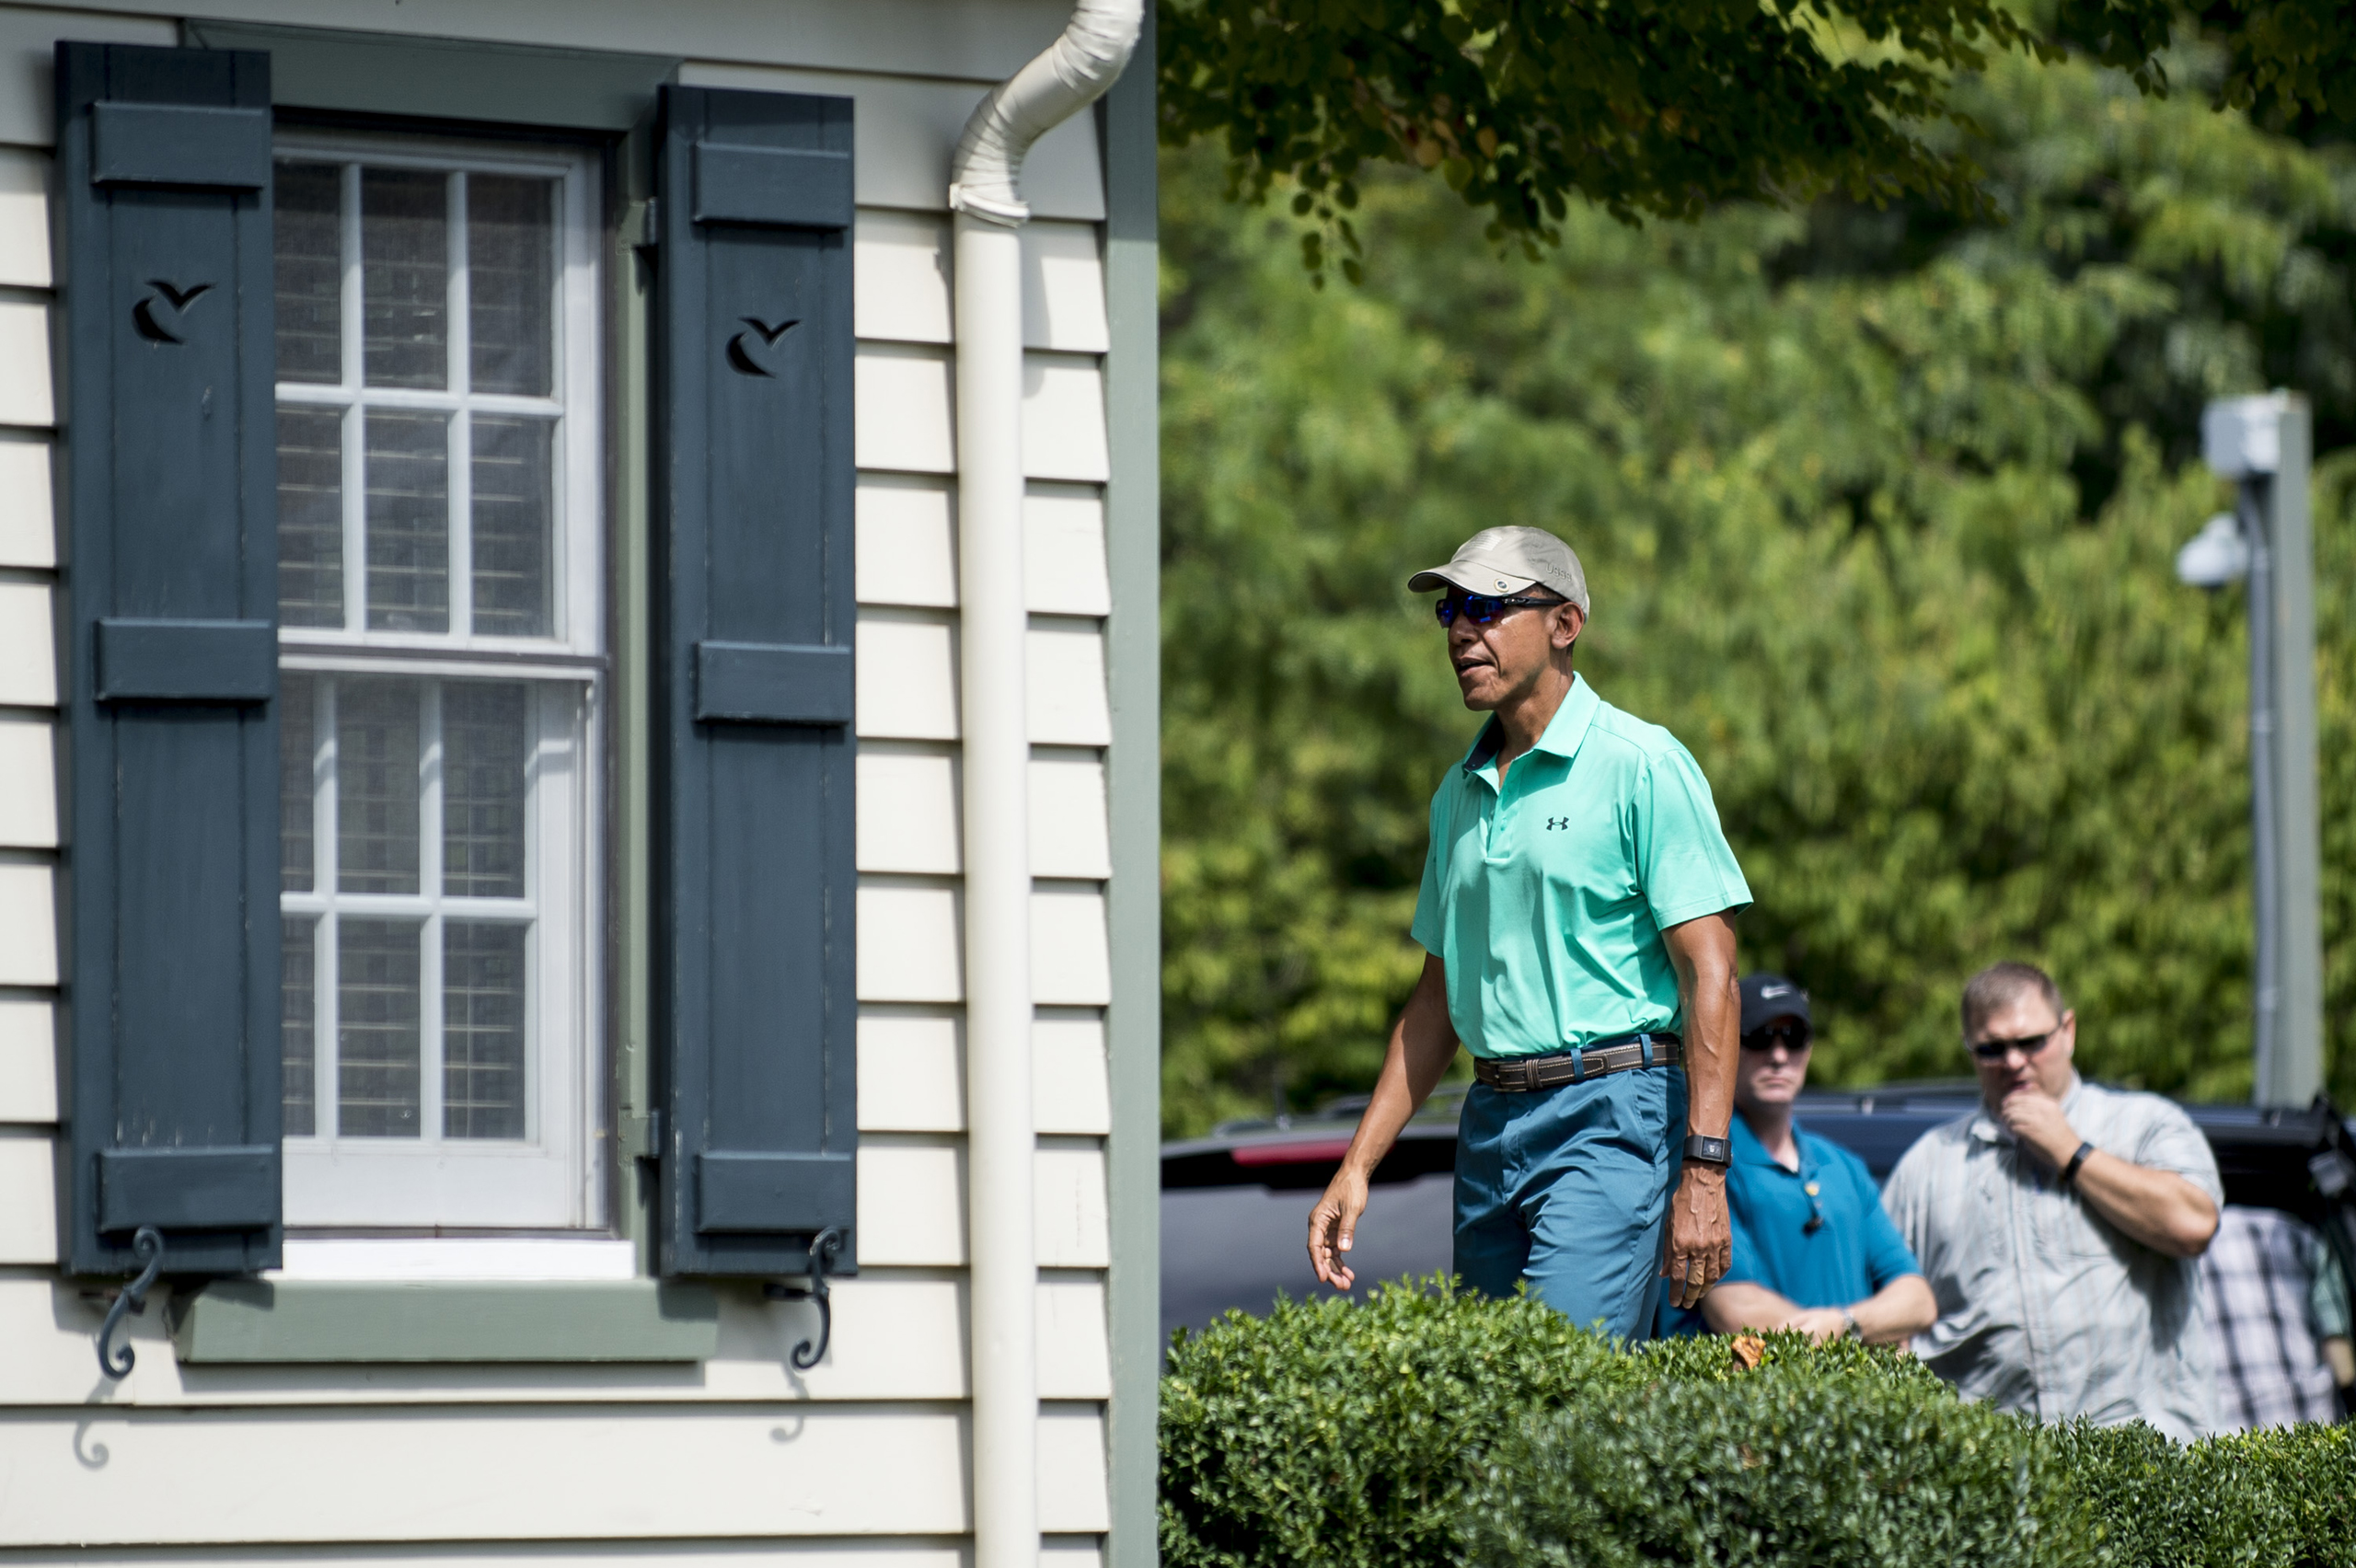 Obama arrives to play a round of golf at Caves Valley Golf Club in Owings Mills, Maryland on Sept. 10, 2016.